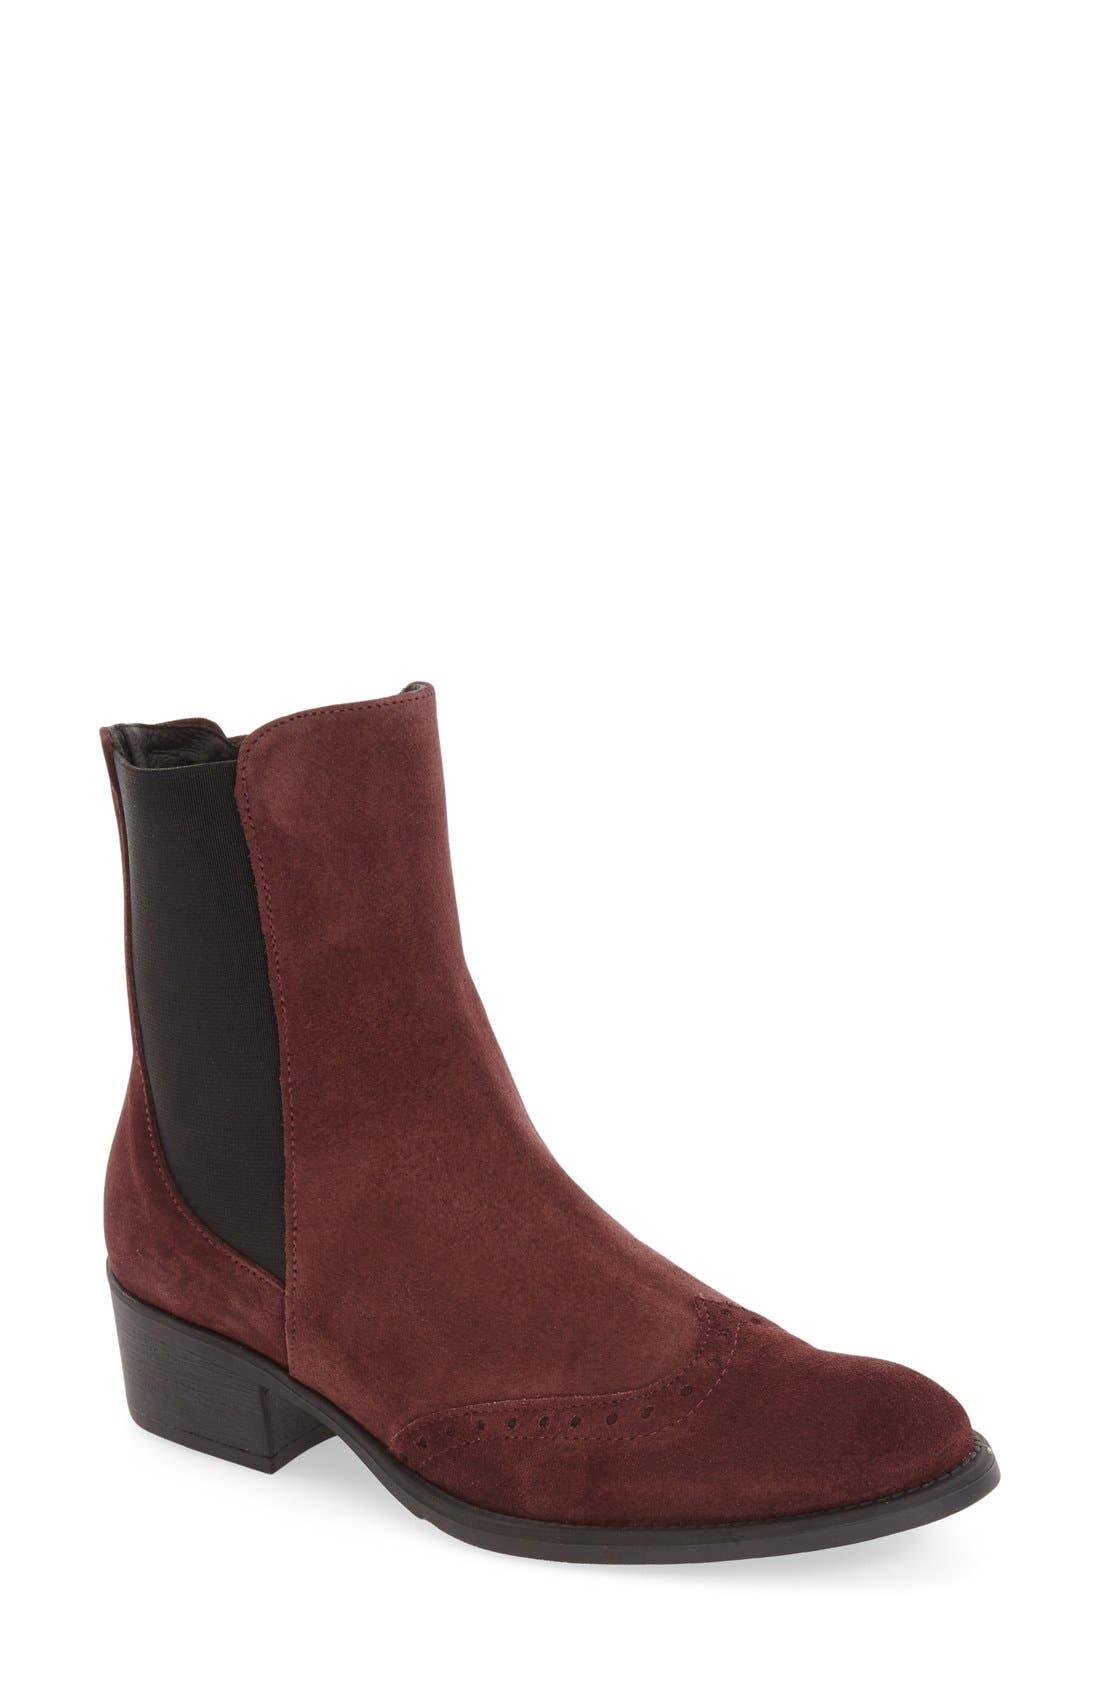 'Trieste' Chelsea Boot,                             Main thumbnail 2, color,